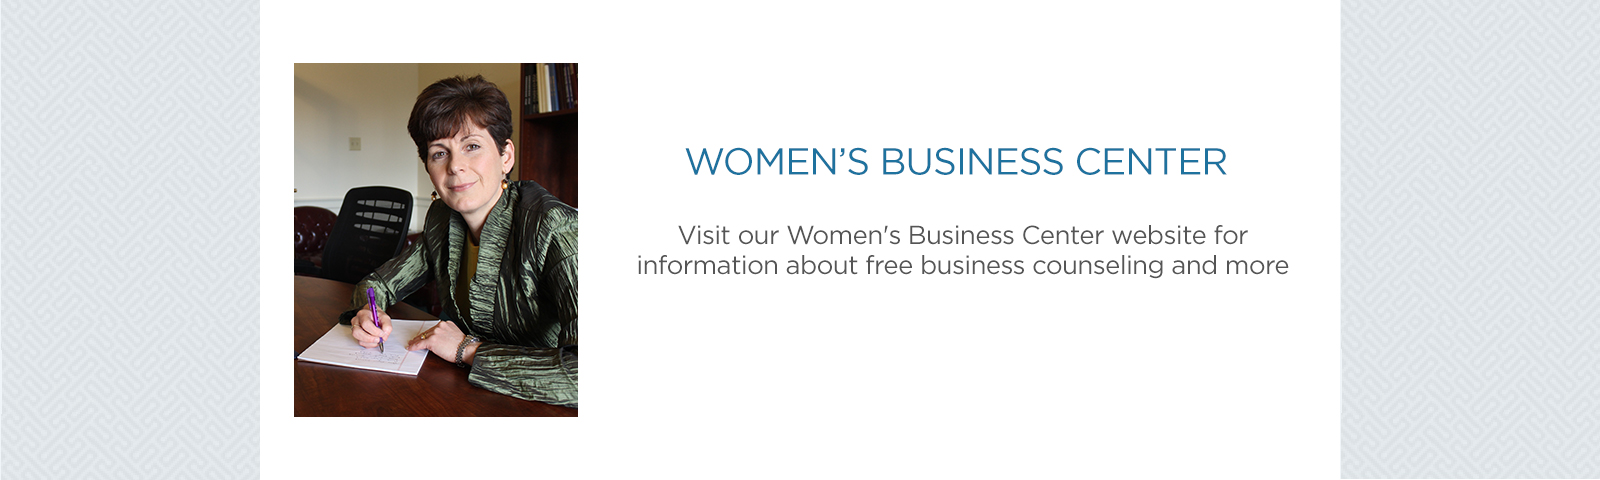 Women's Business Center (WBC)